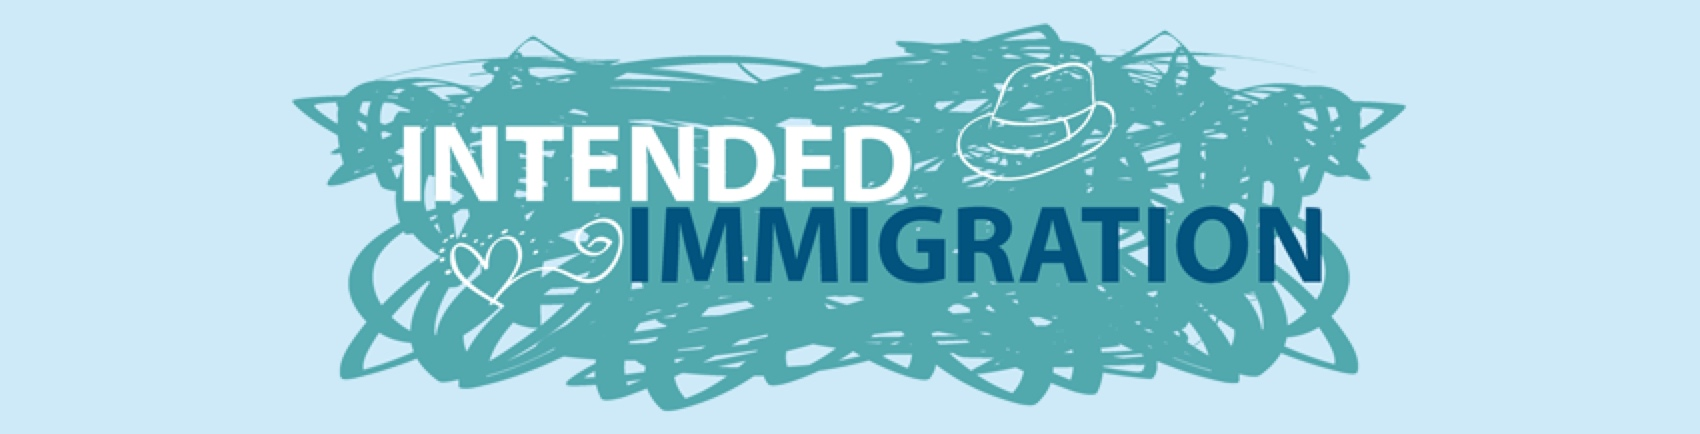 Intended Immigration - Banner